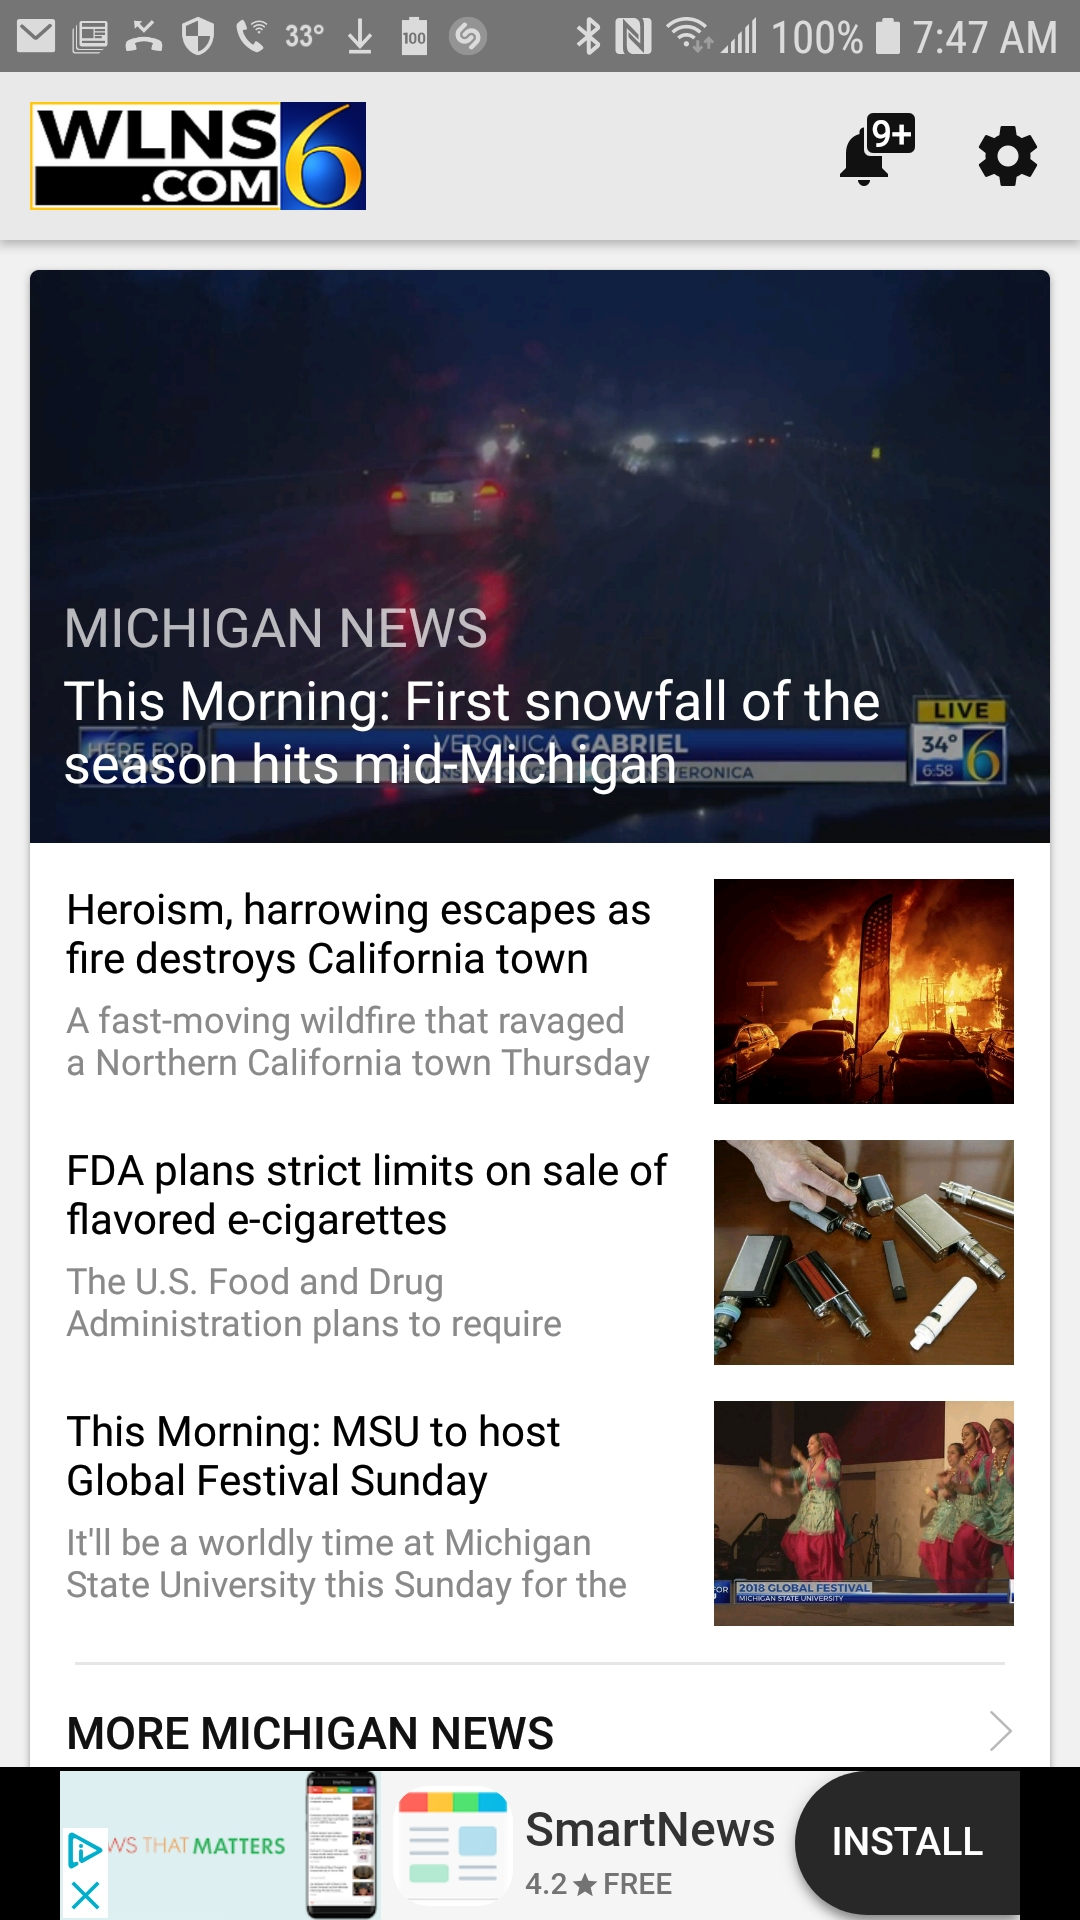 WLNS 6 Apps | WLNS 6 News